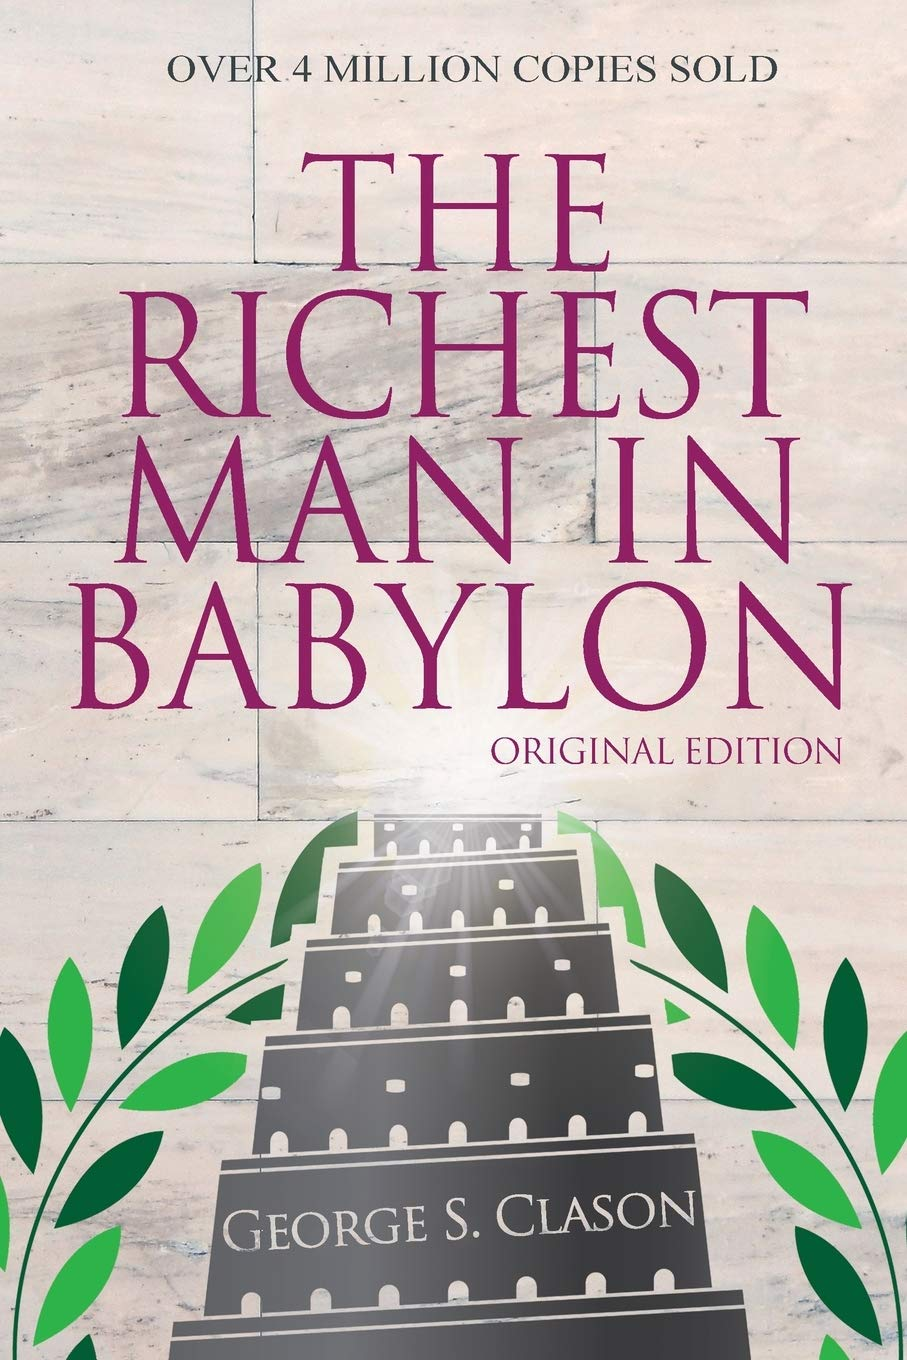 The Richest Man In Babylon - Original Edition: Clason, George S: Amazon.com.au: Books